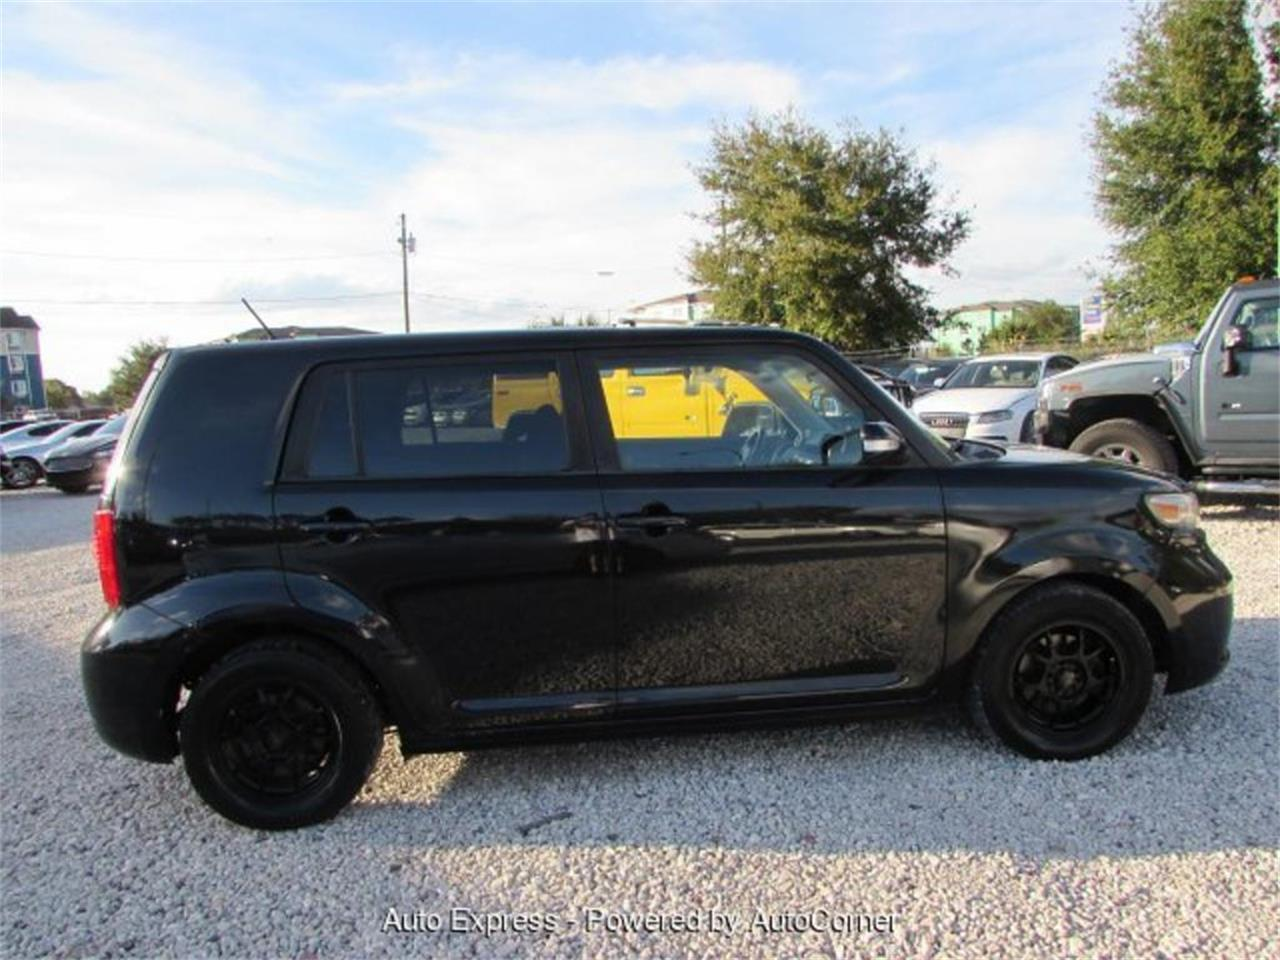 2008 Scion Xb for sale in Orlando, FL – photo 5